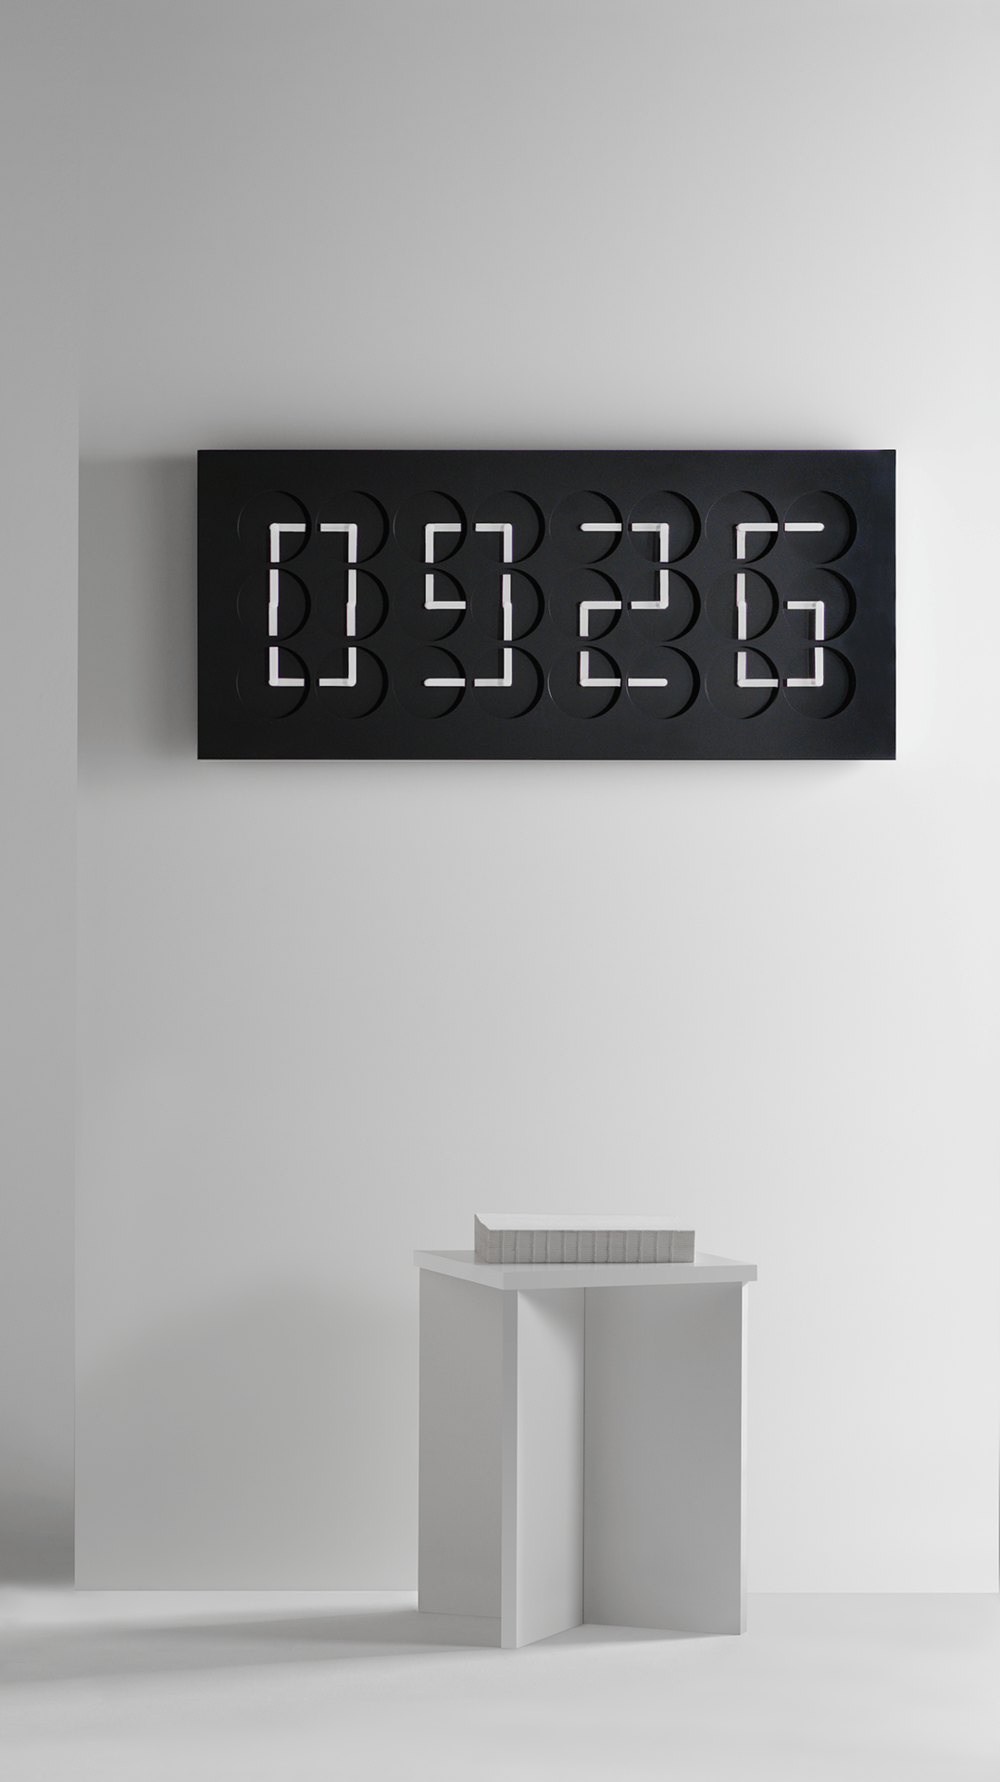 ClockClock 24 by Humans since 1982, Stockholm 2017.